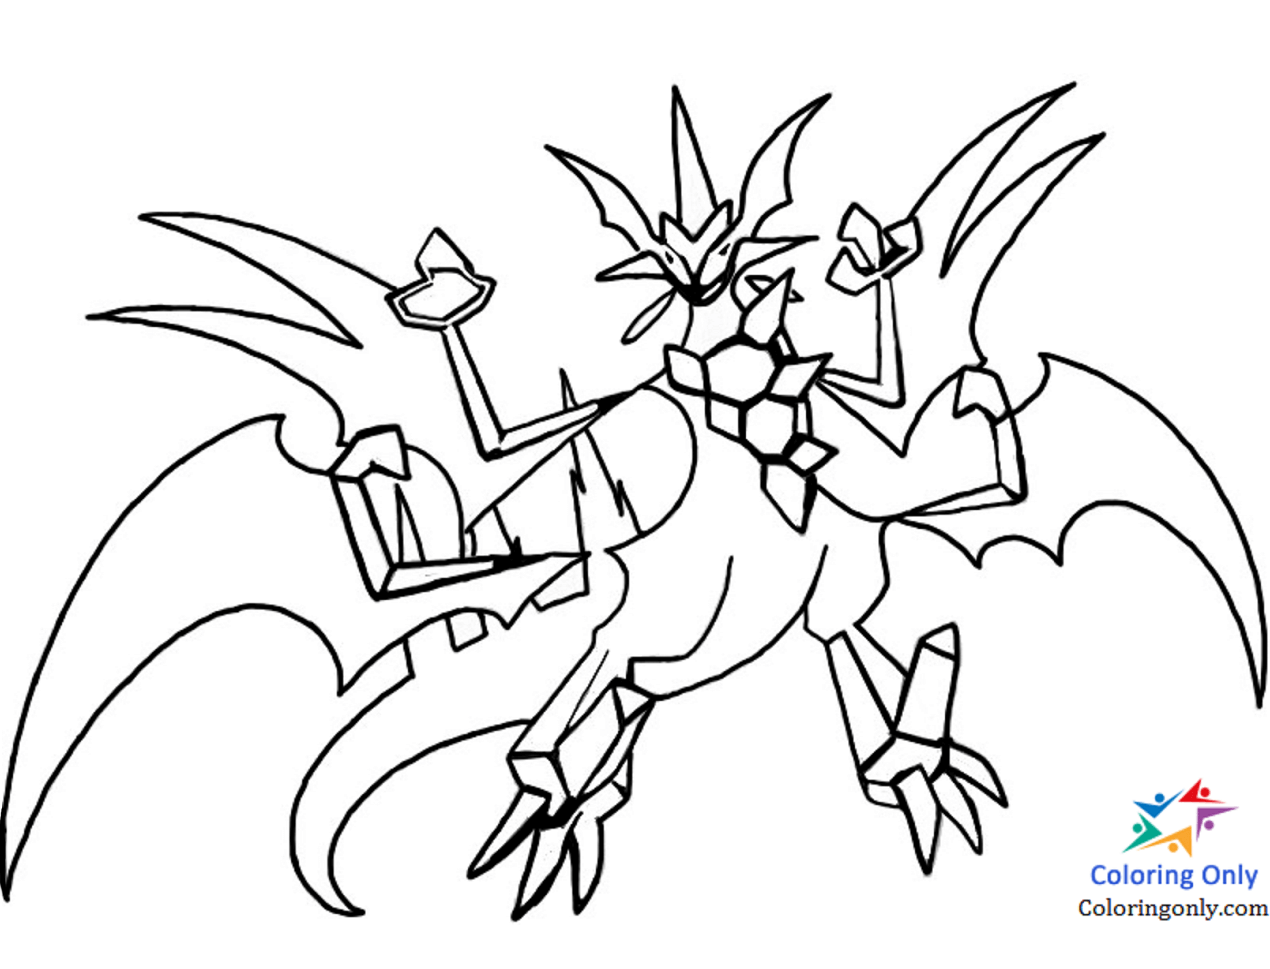 Pokemon Coloring Pages - Free Printable Coloring Pages for Kids